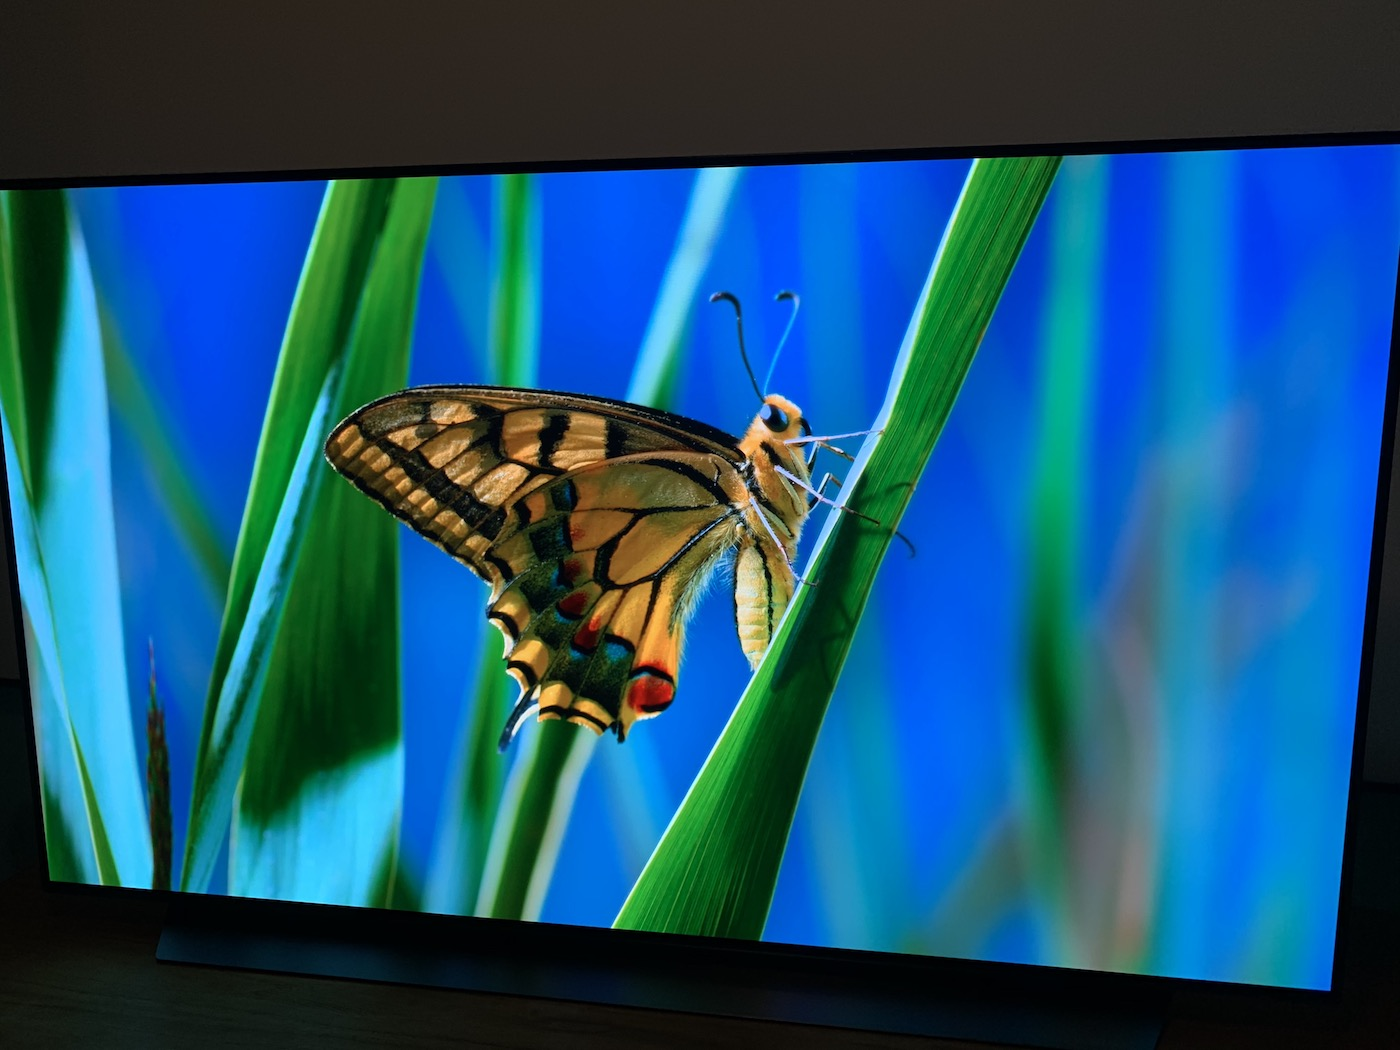 Showcasing LG C9 OLED 4K TV's Dolby Vision Technology - screen is showing a butterfly